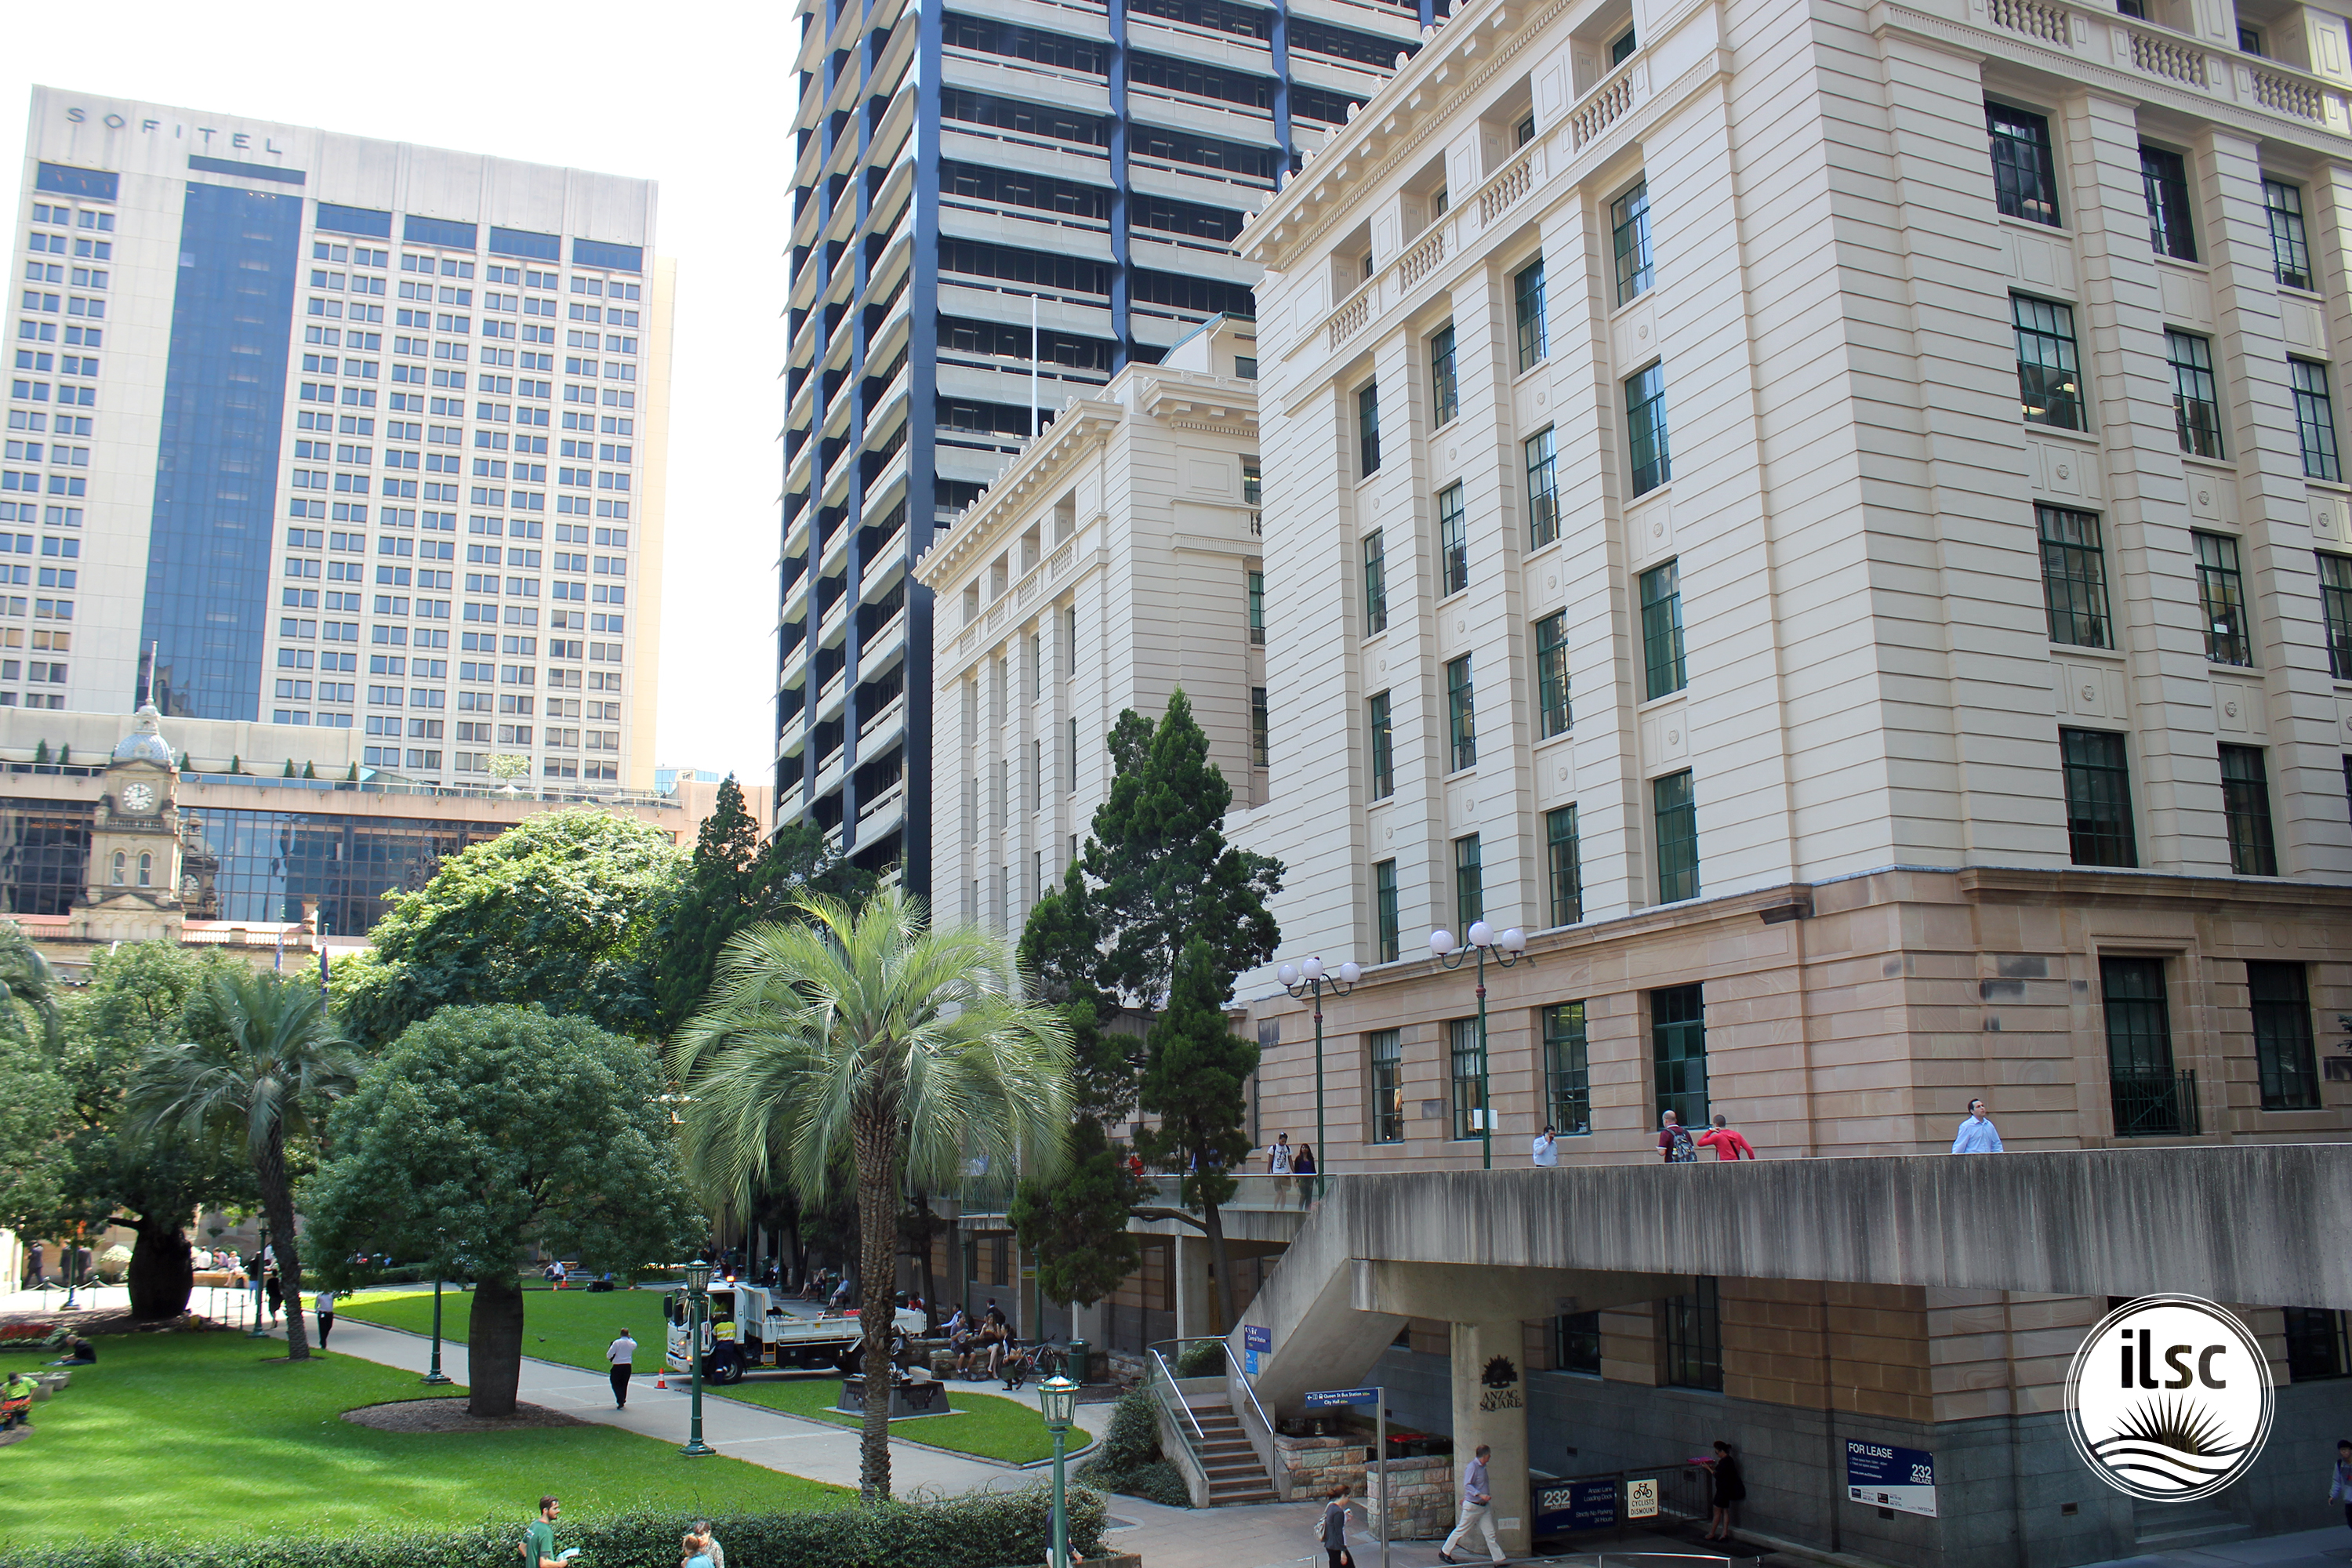 ILSC Language Schools Brisbane Campus